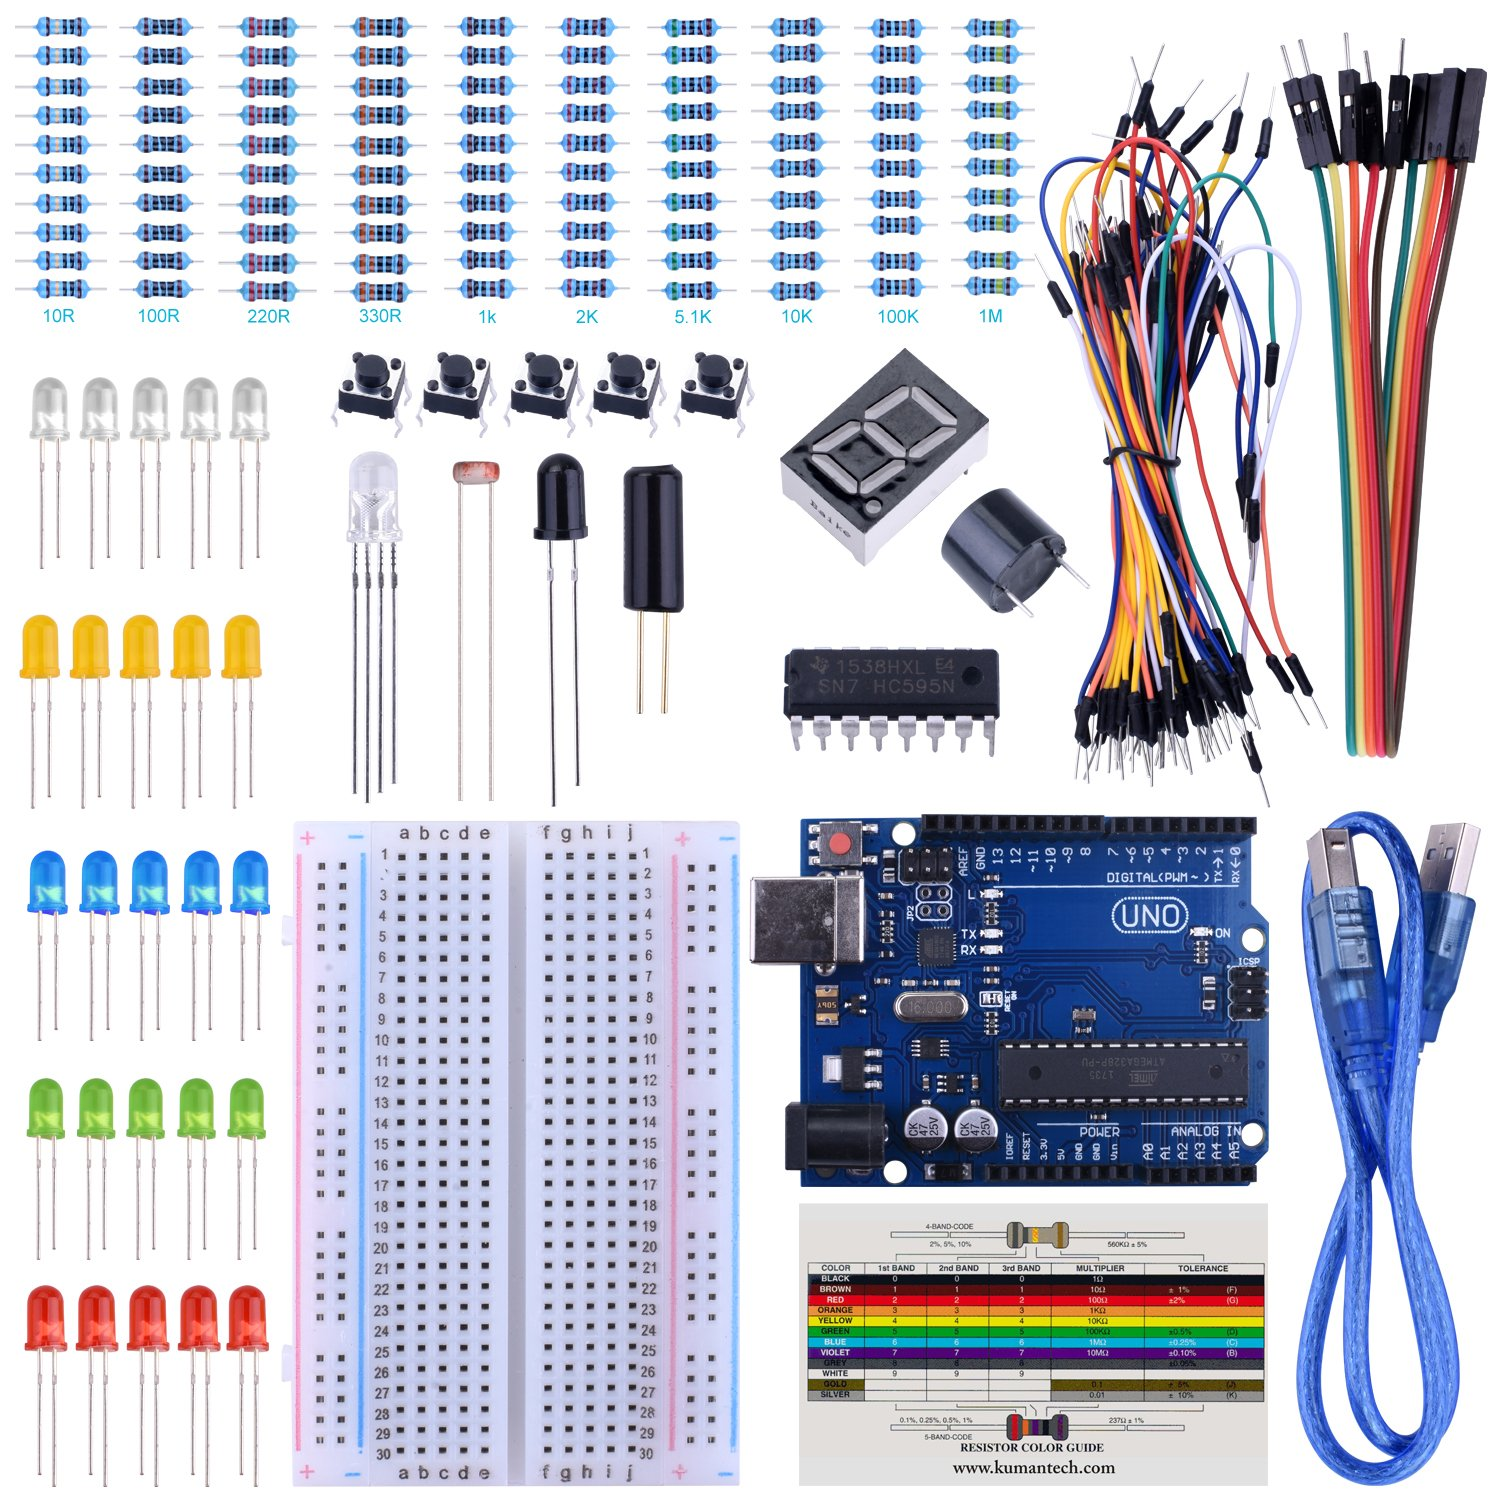 1 Digit 7-Segment Display Breadboard Resistance Card Frame Sensor UNIROI UNO Starter Kit for Arduino with Free Tutorials 147 Items with case 65 Jumper Wire and Buzzer UA002